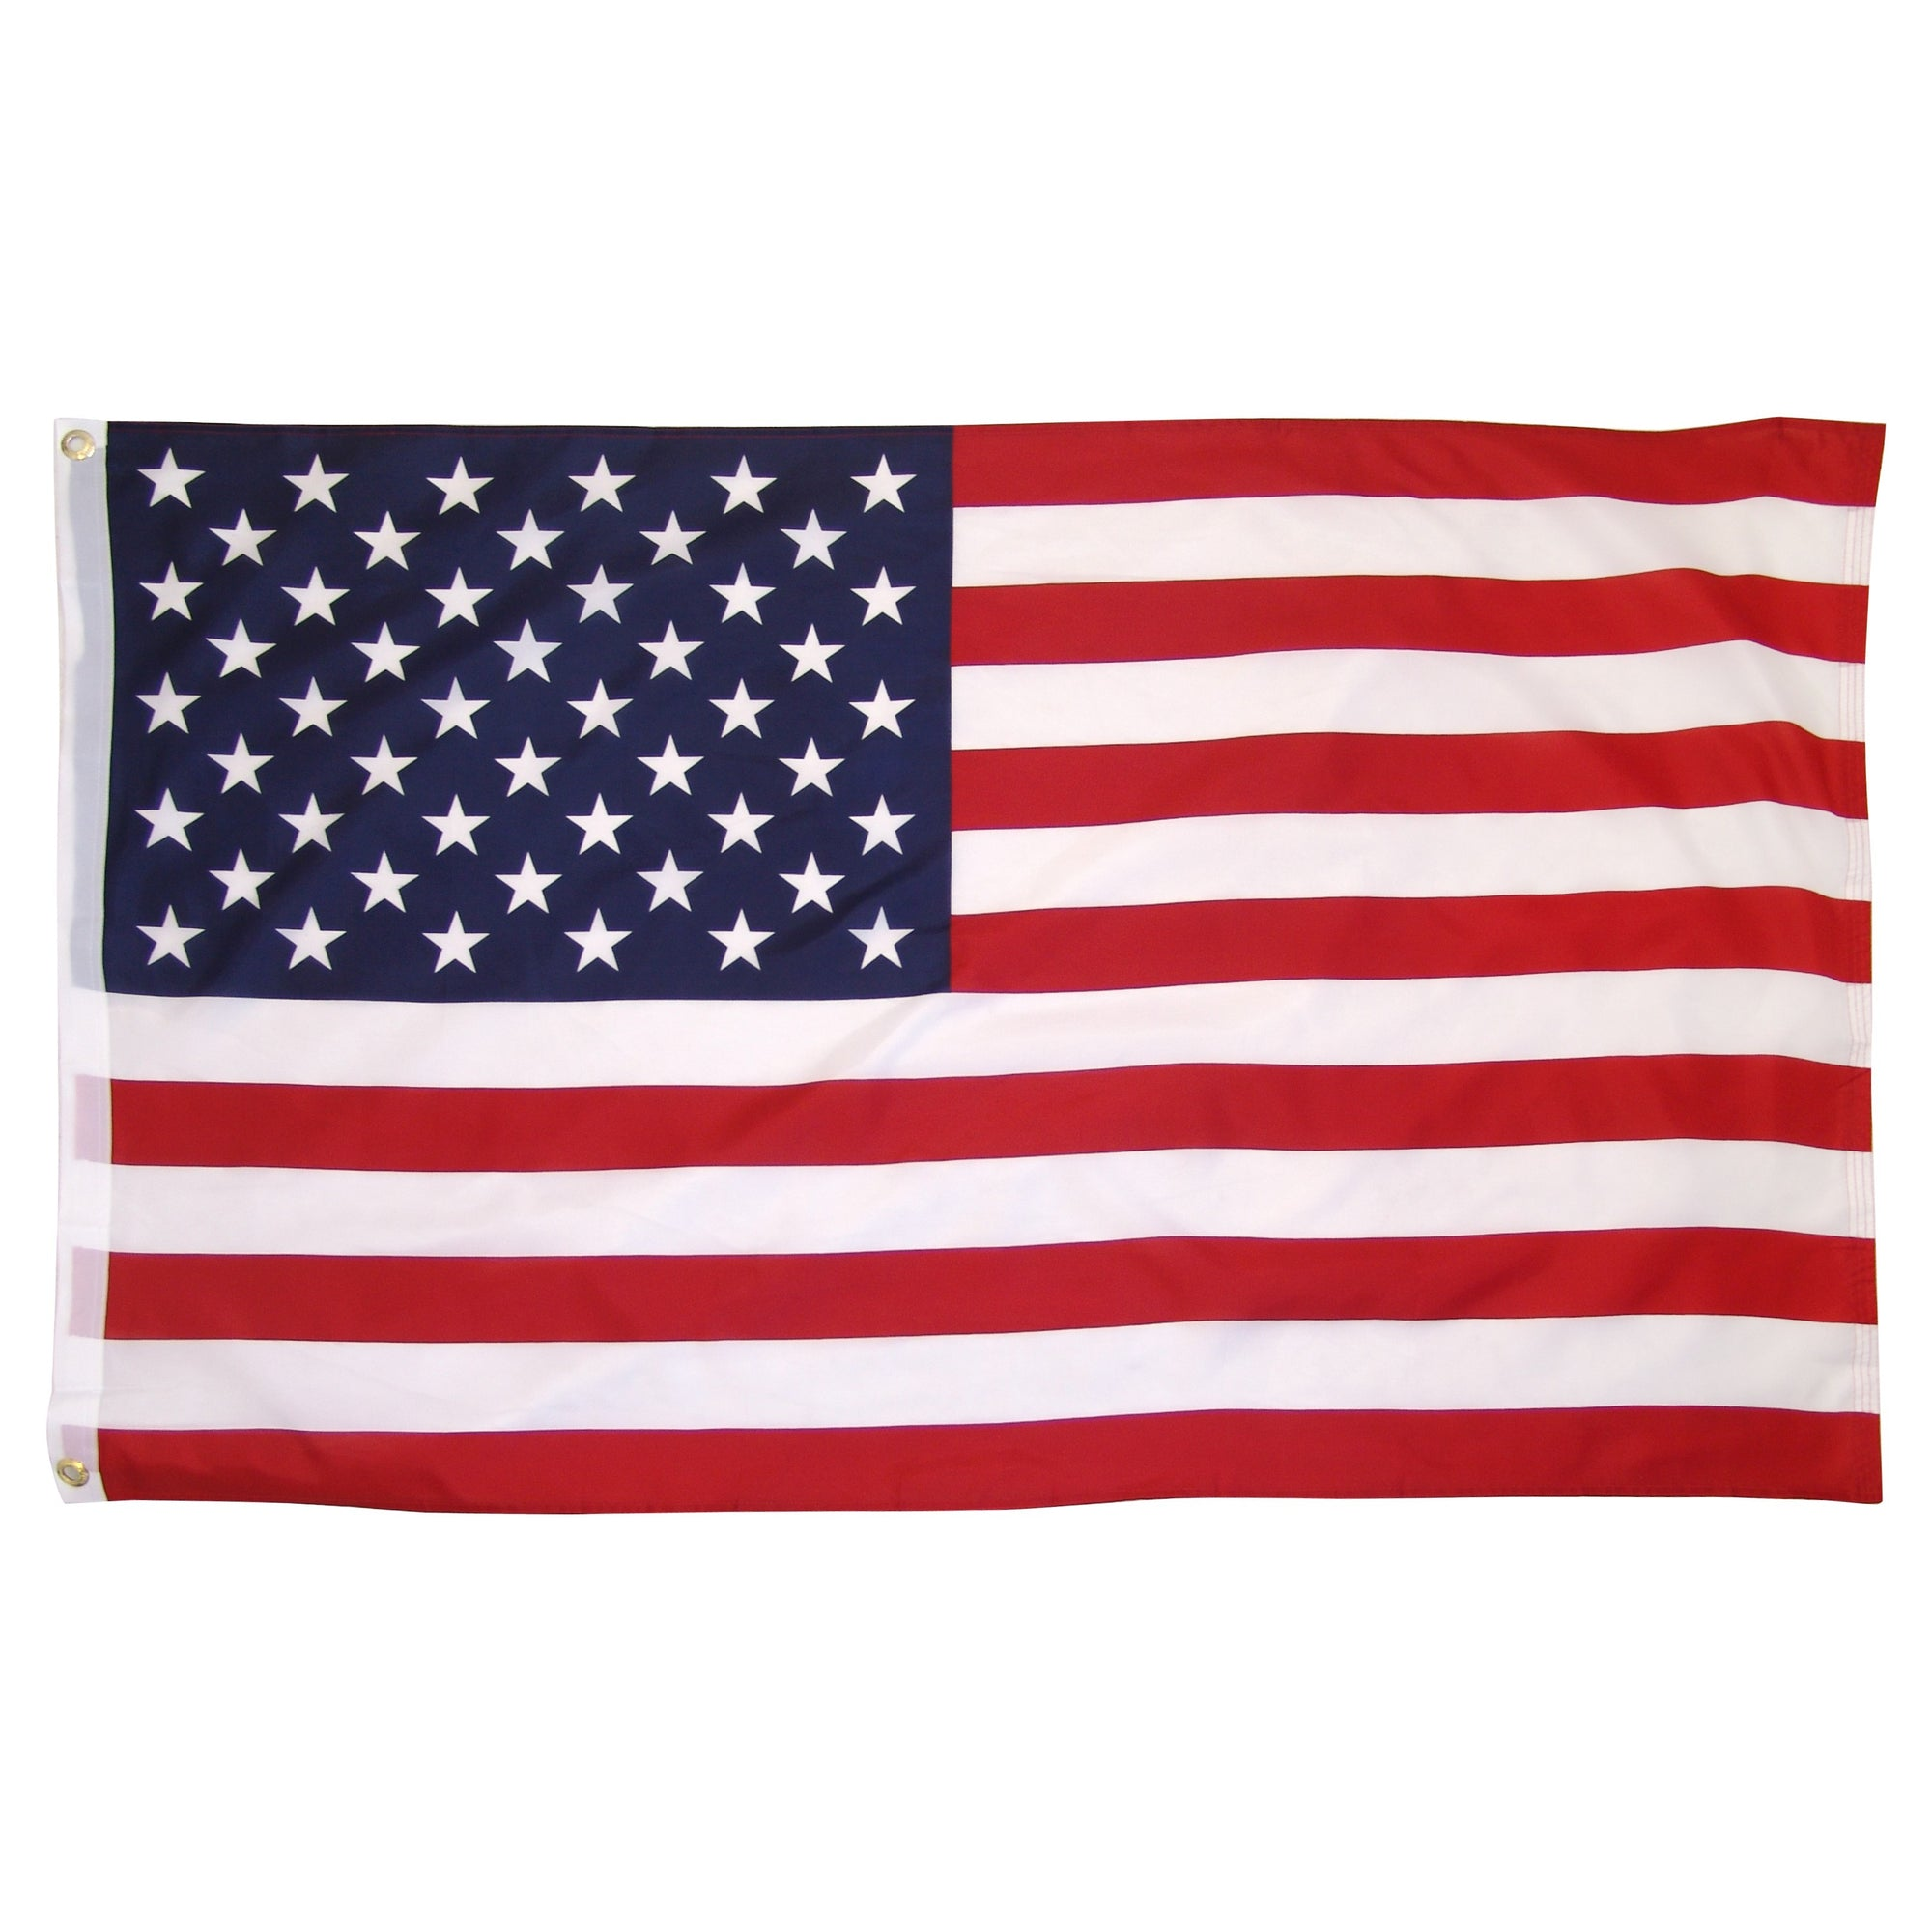 United States 5' x 8' Printed Nylon Flag